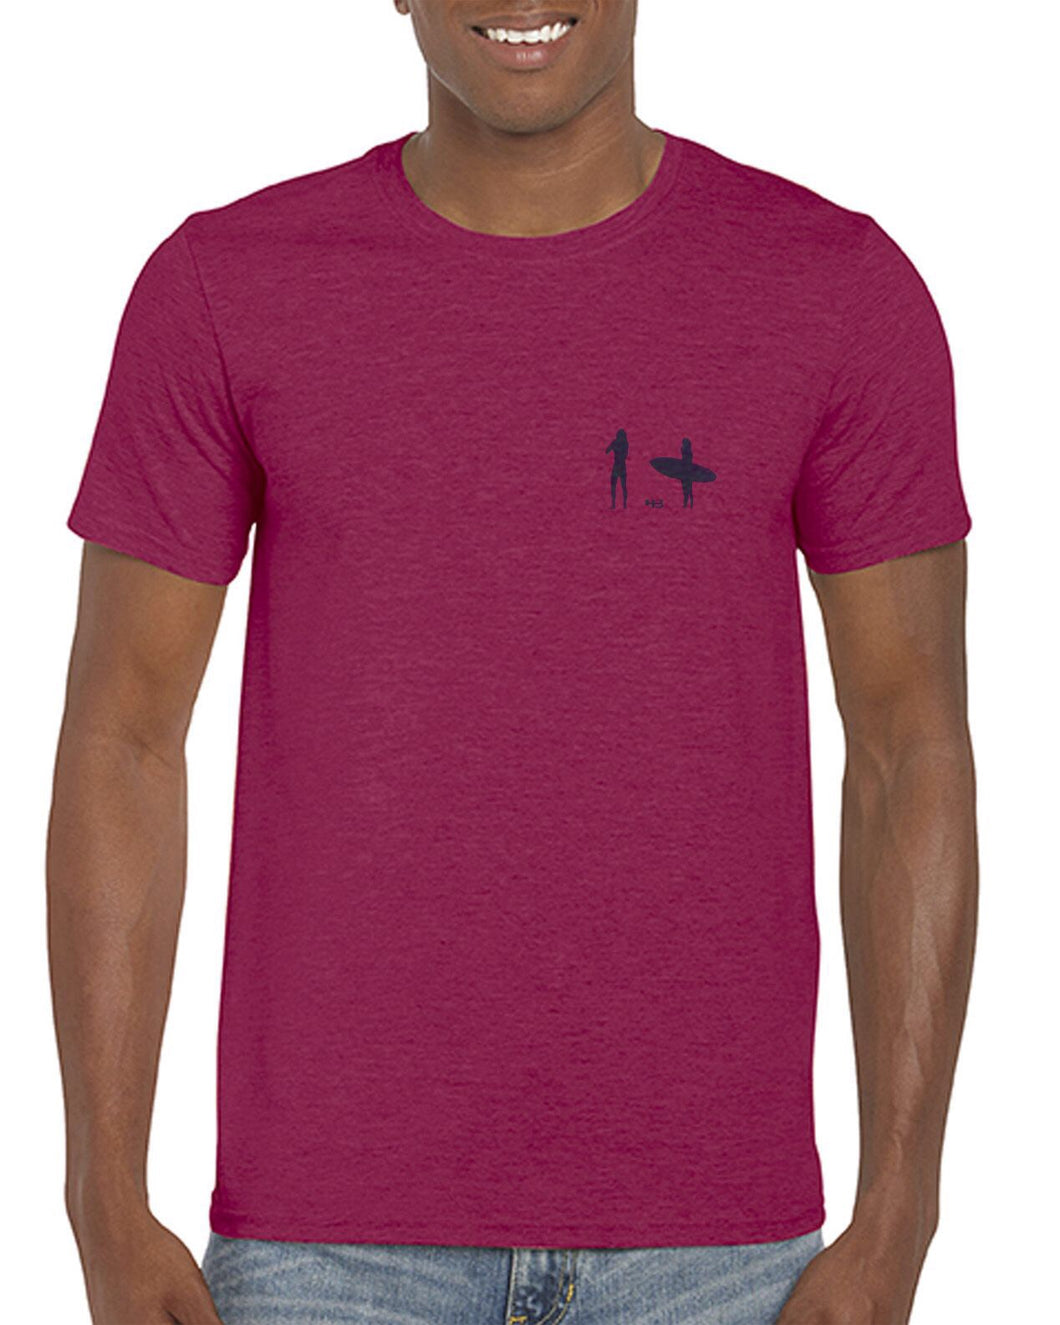 Moongazer Short Sleeve Cotton tee - Burgandy